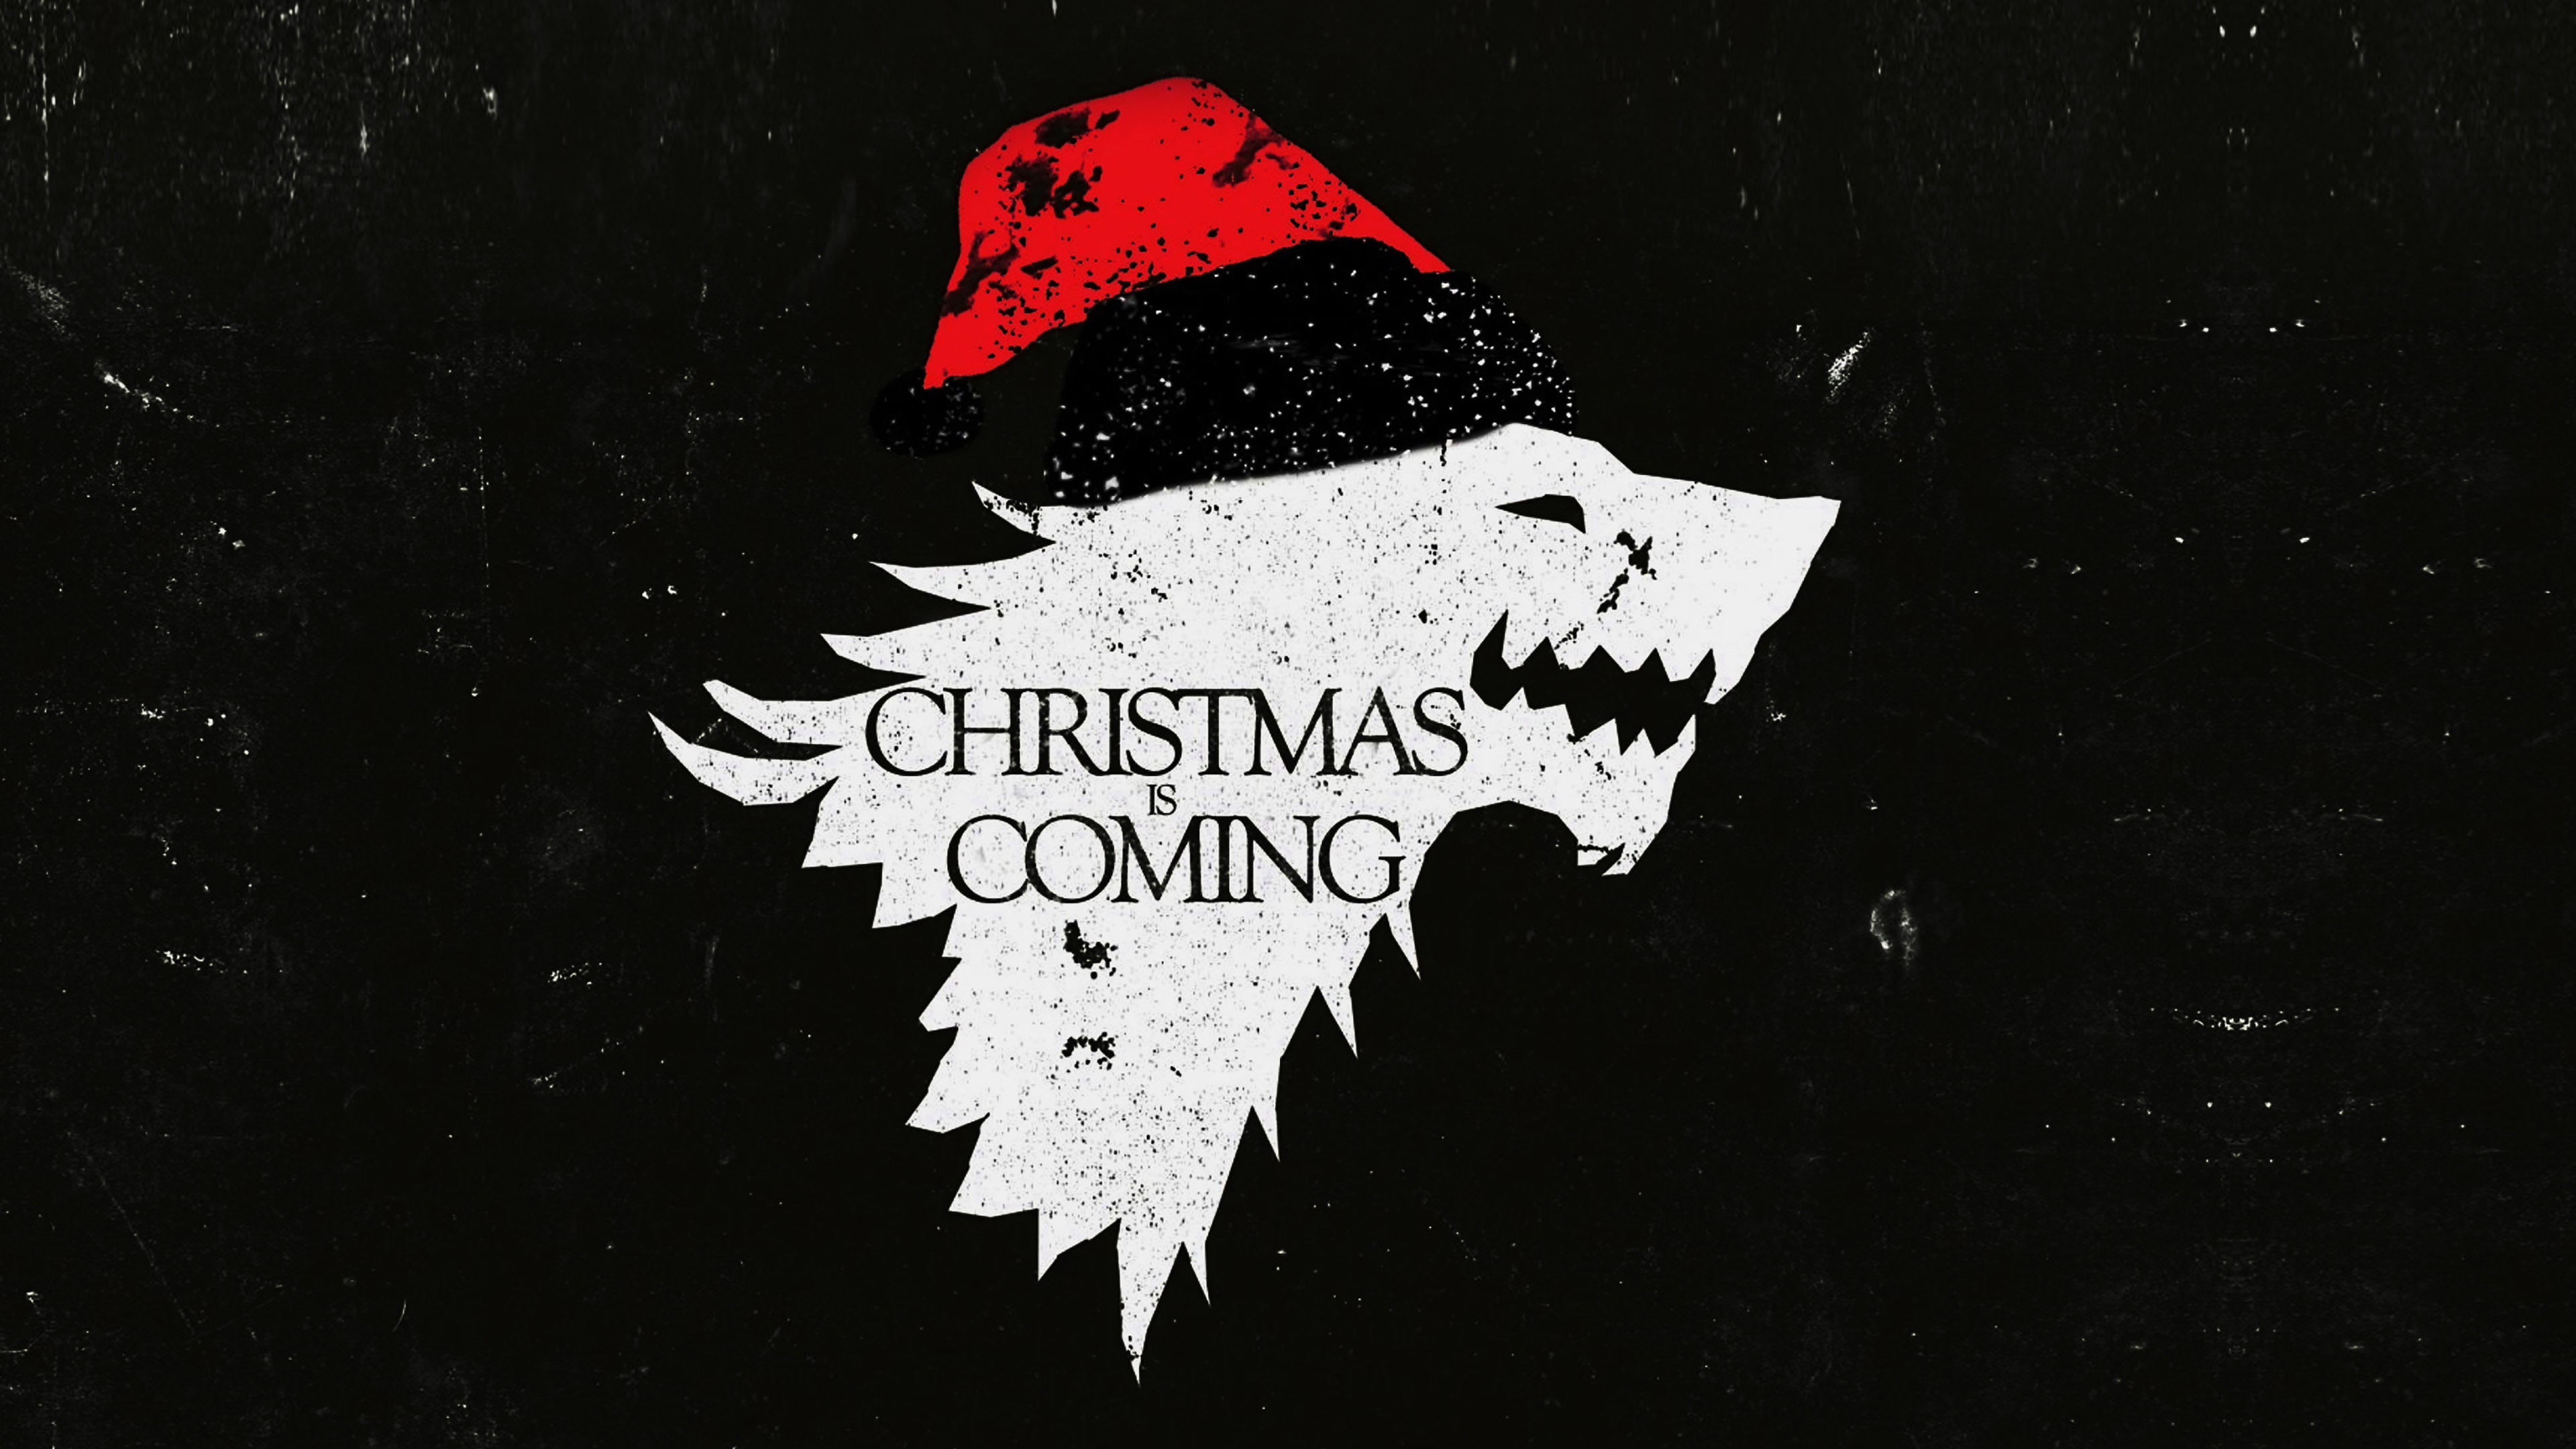 Disney Fall Desktop Wallpaper Ag24 Christmas Is Coming Dark Game Of Thrones Art Wallpaper